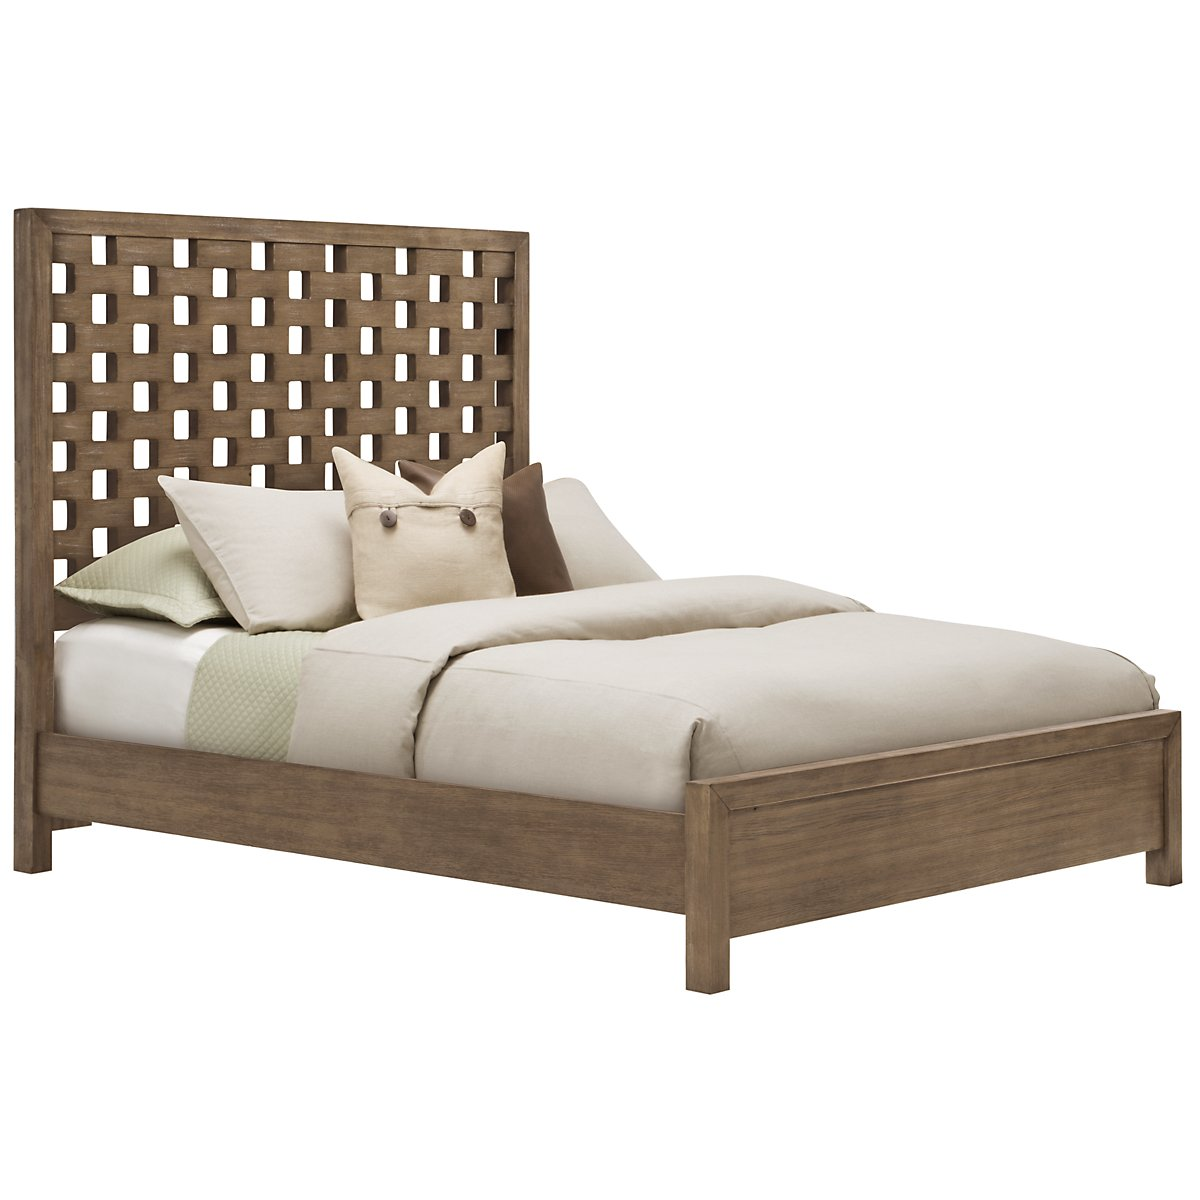 Mirabelle Light Tone Panel Bed